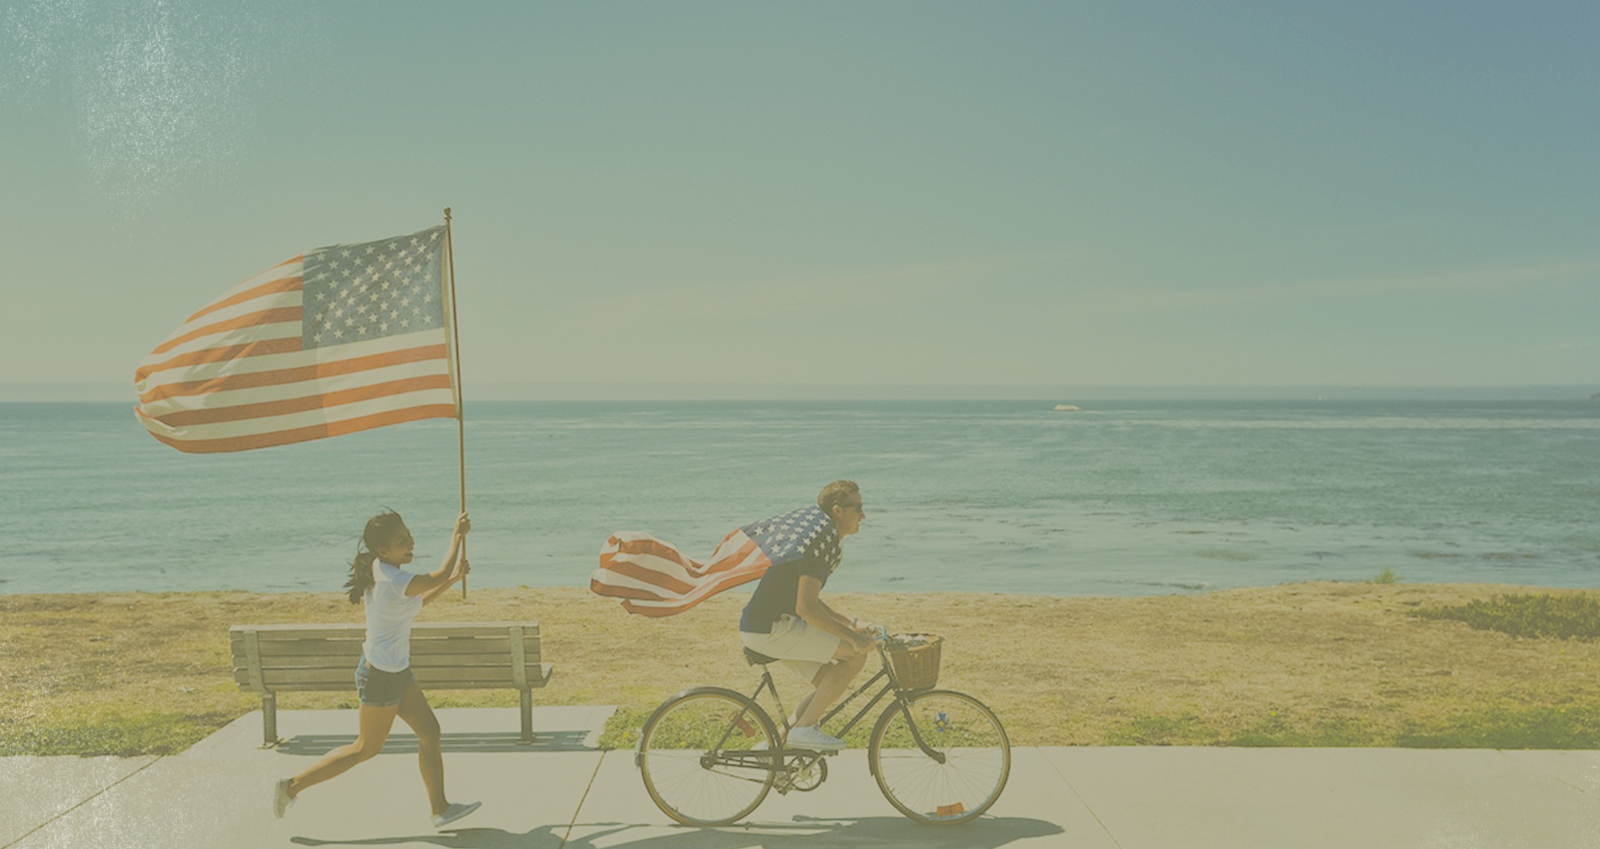 How To Celebrate Your Own Independence On The Fourth Of July